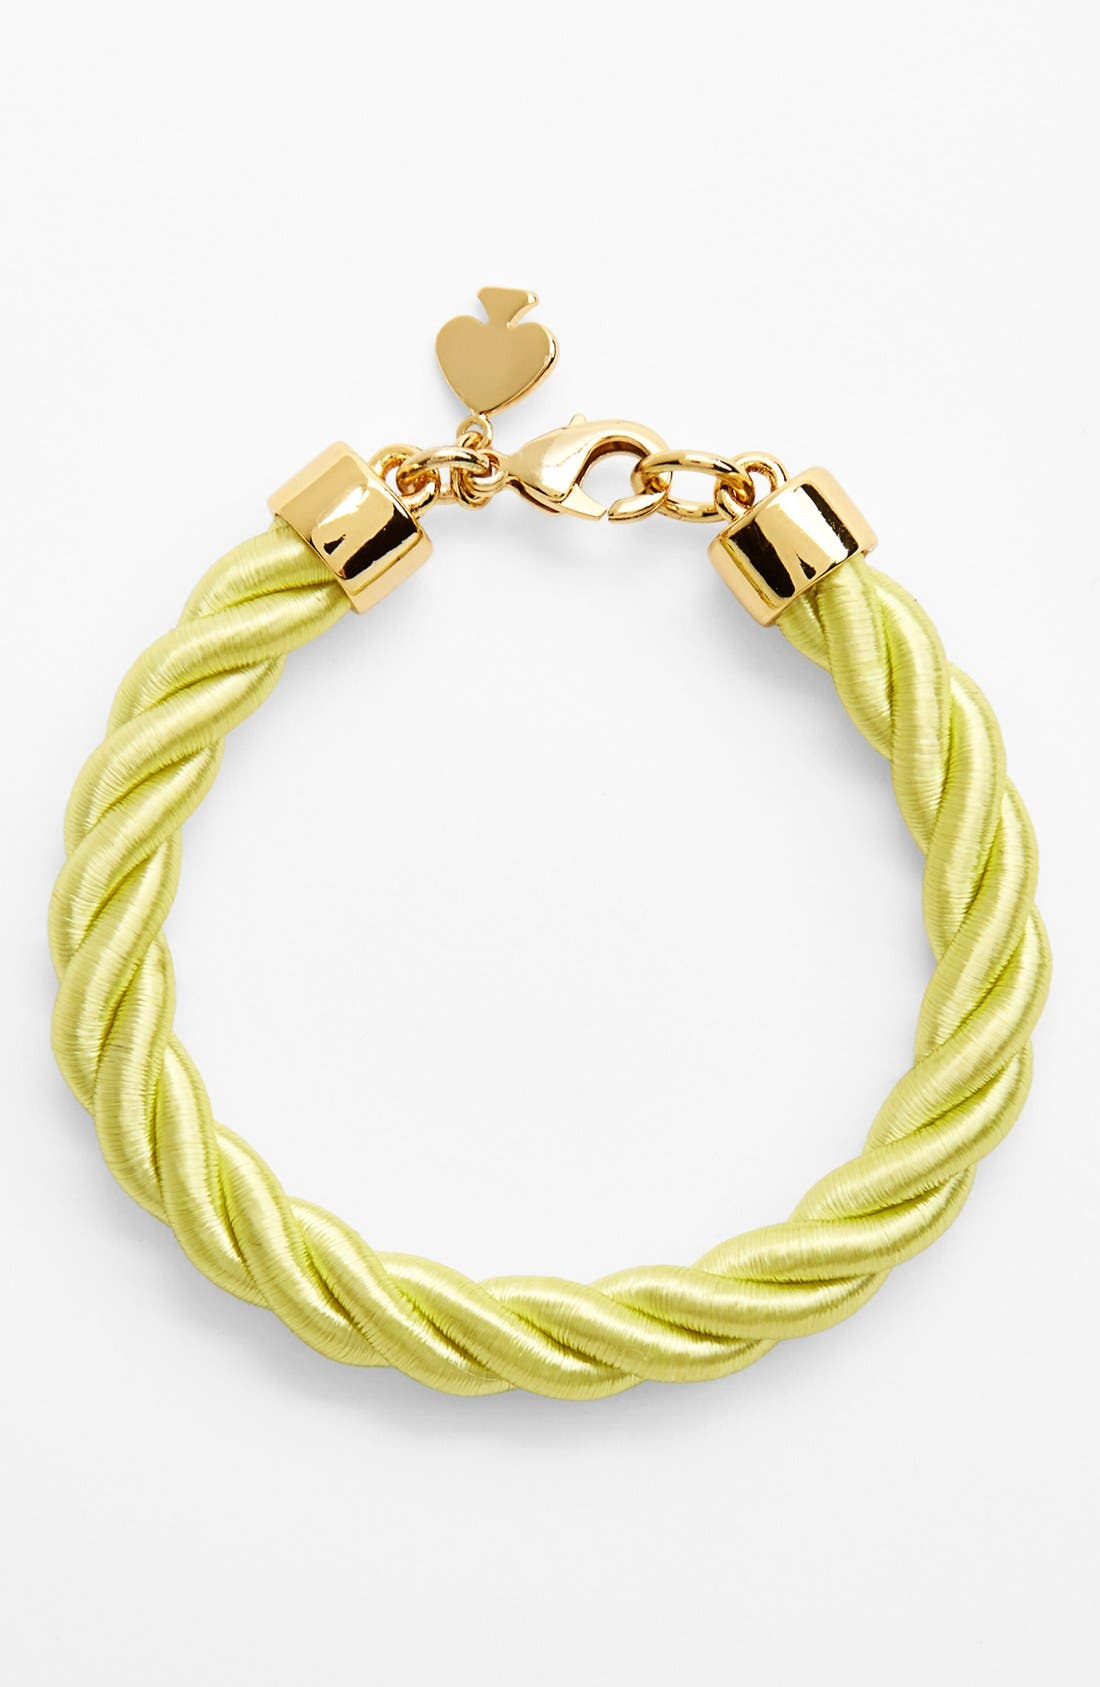 Main Image - kate spade new york 'learn the ropes' cord bracelet